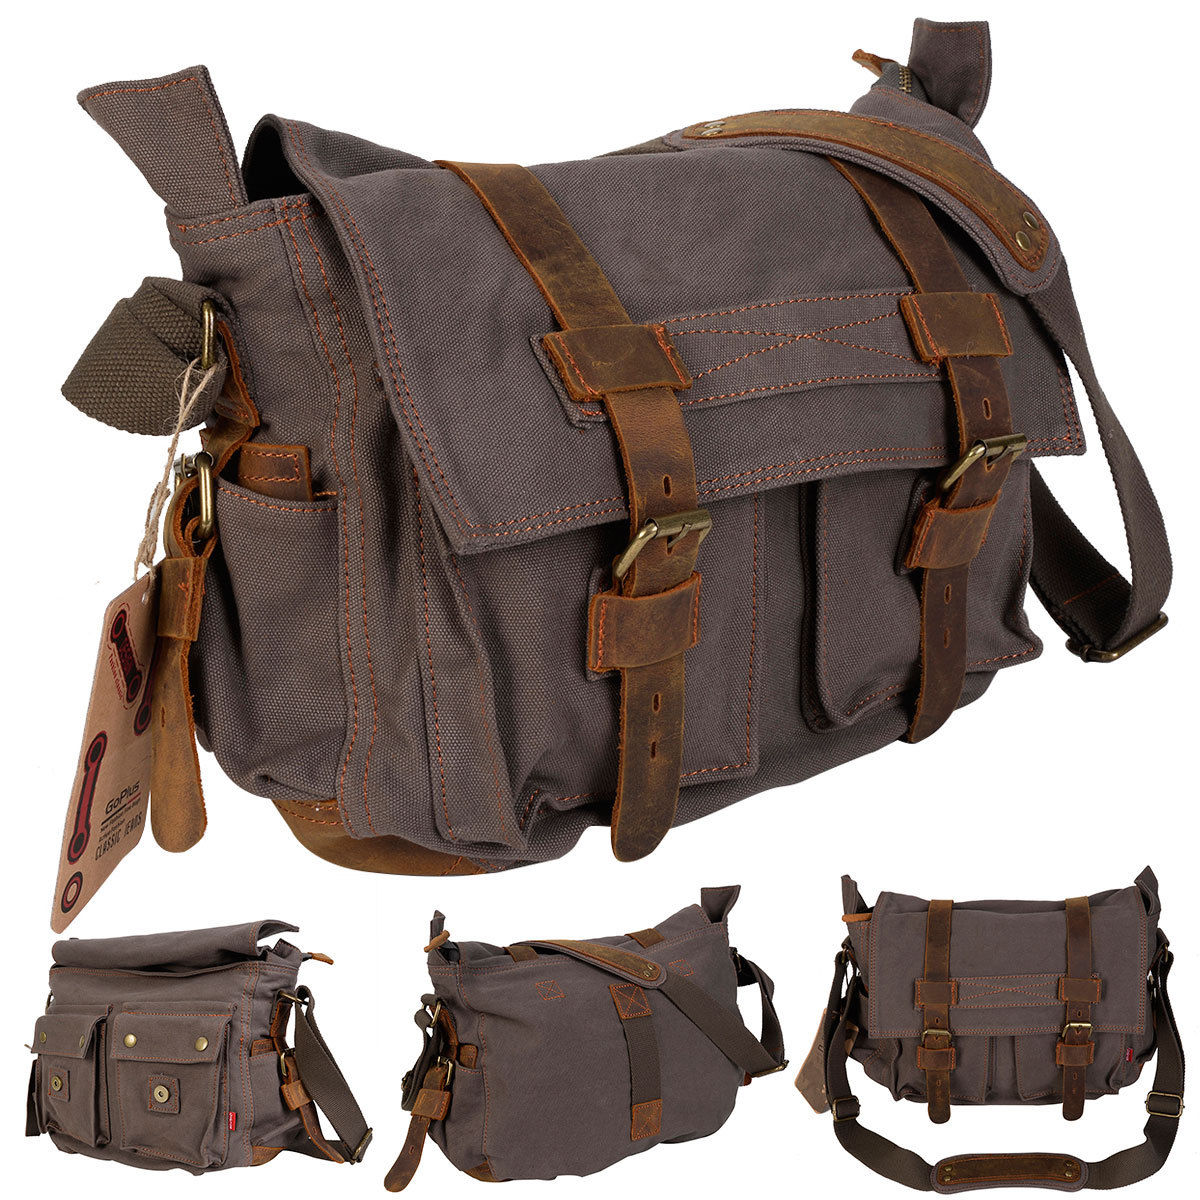 Costway Men's Vintage Canvas Leather School Military Shoulder Messenger Bag (Army Green)